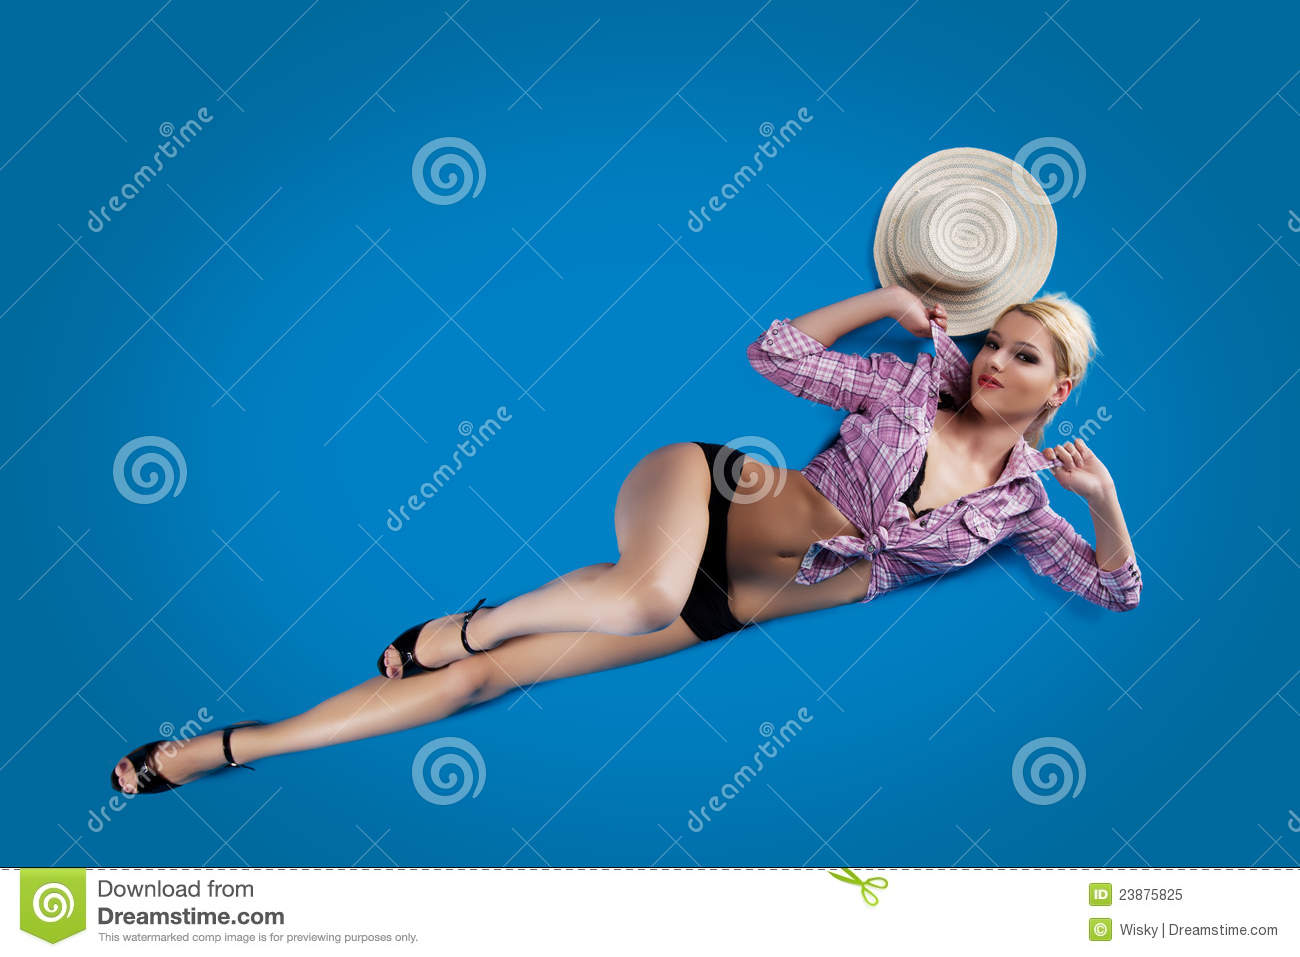 Pretty woman pin-up style lay on blue background